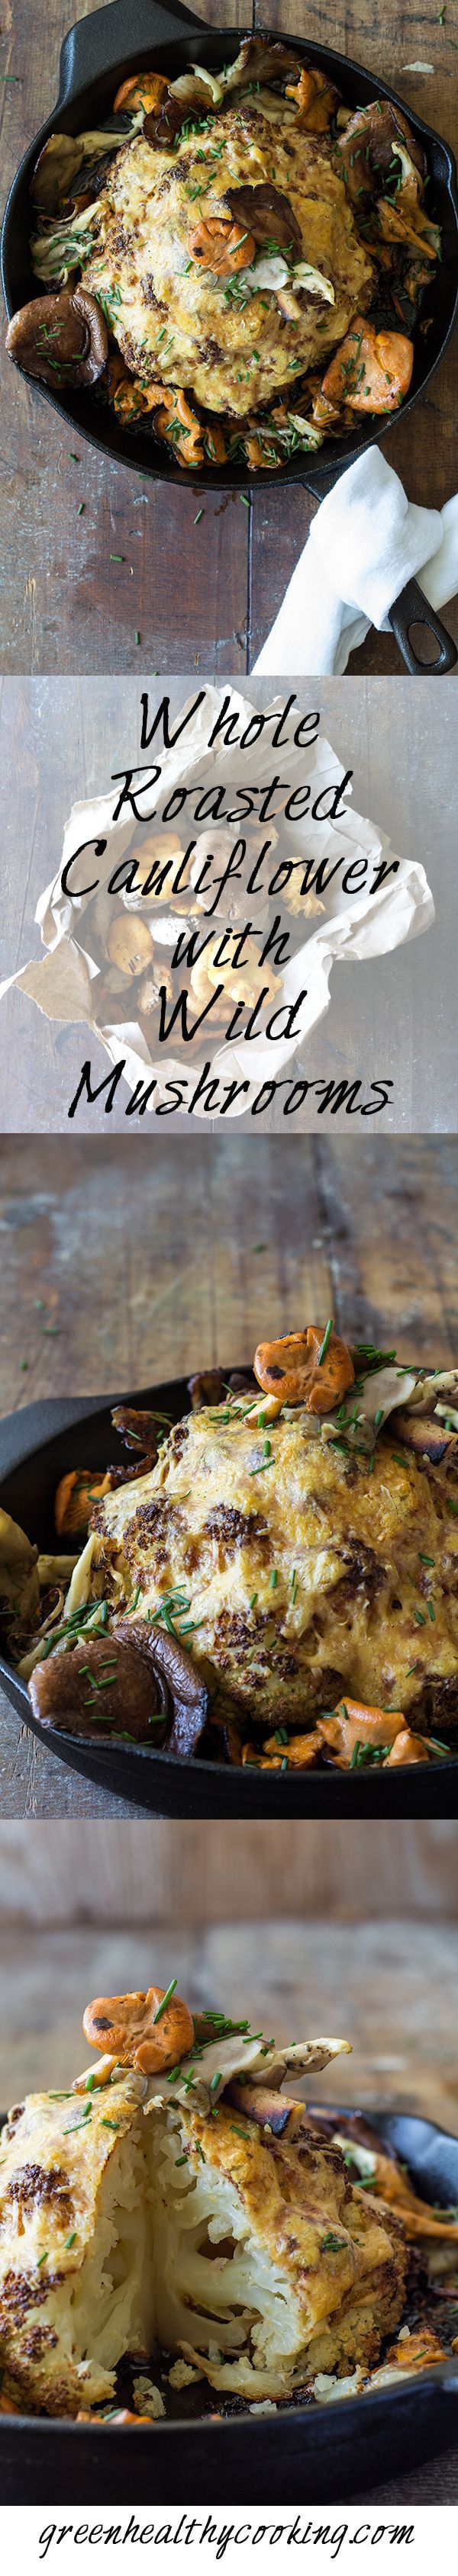 Whole Roasted Cauliflower with Wild Mushrooms. A symphony of taste and colors. Healthy, clean, real, beautiful ... perfect vegetarian lunch recipe!